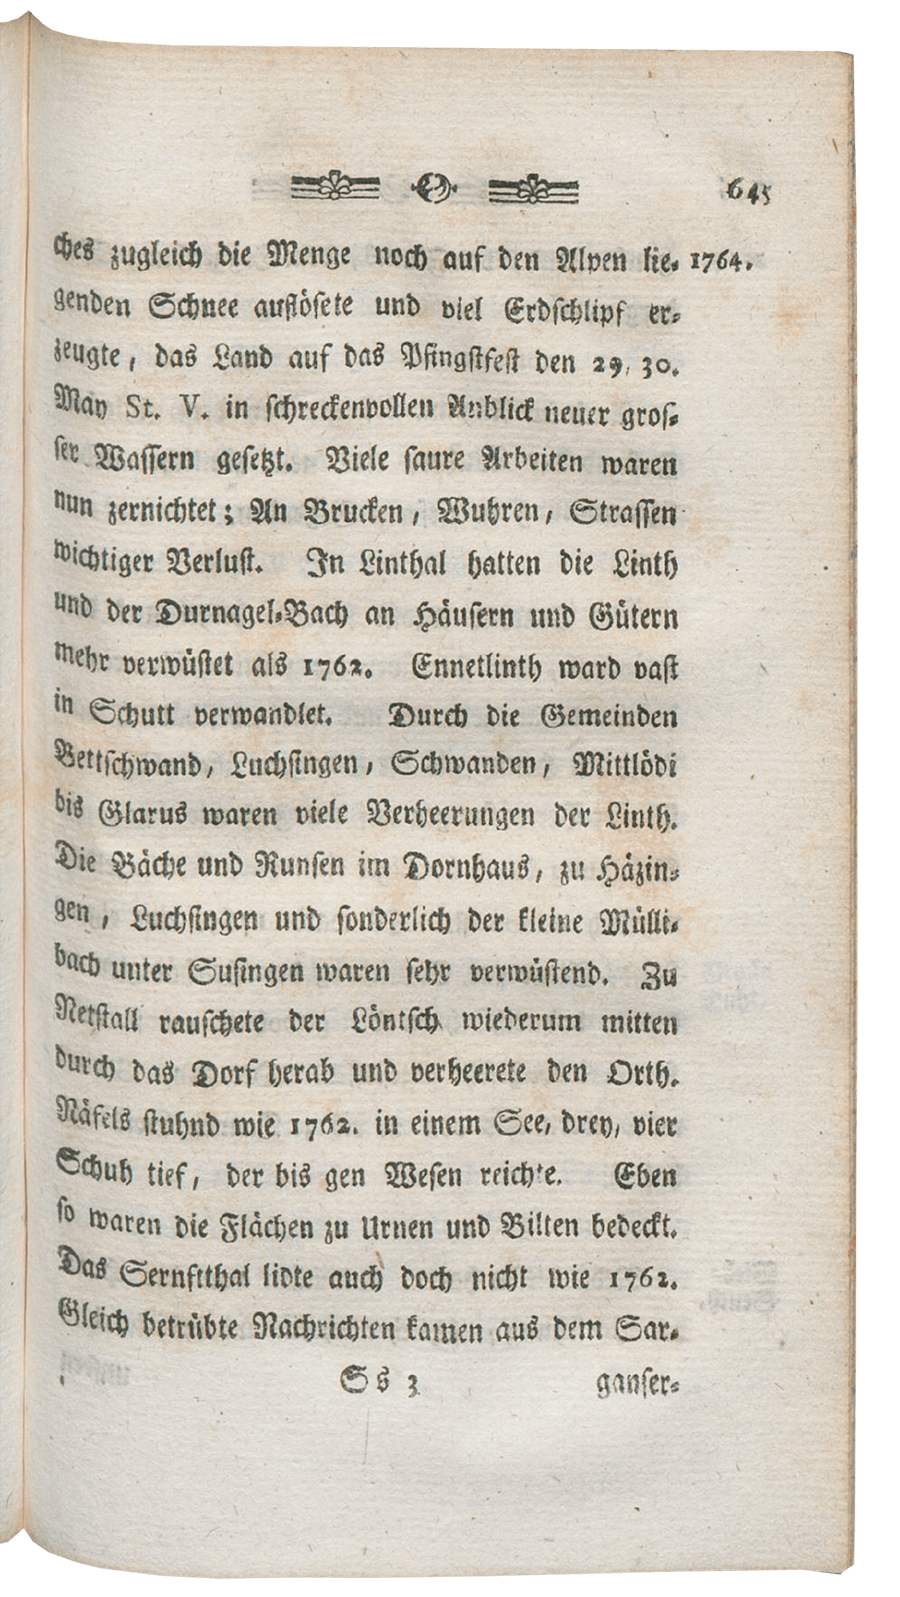 1764_1774_TrÅmpi_Glarner-Chronick_644-646-2